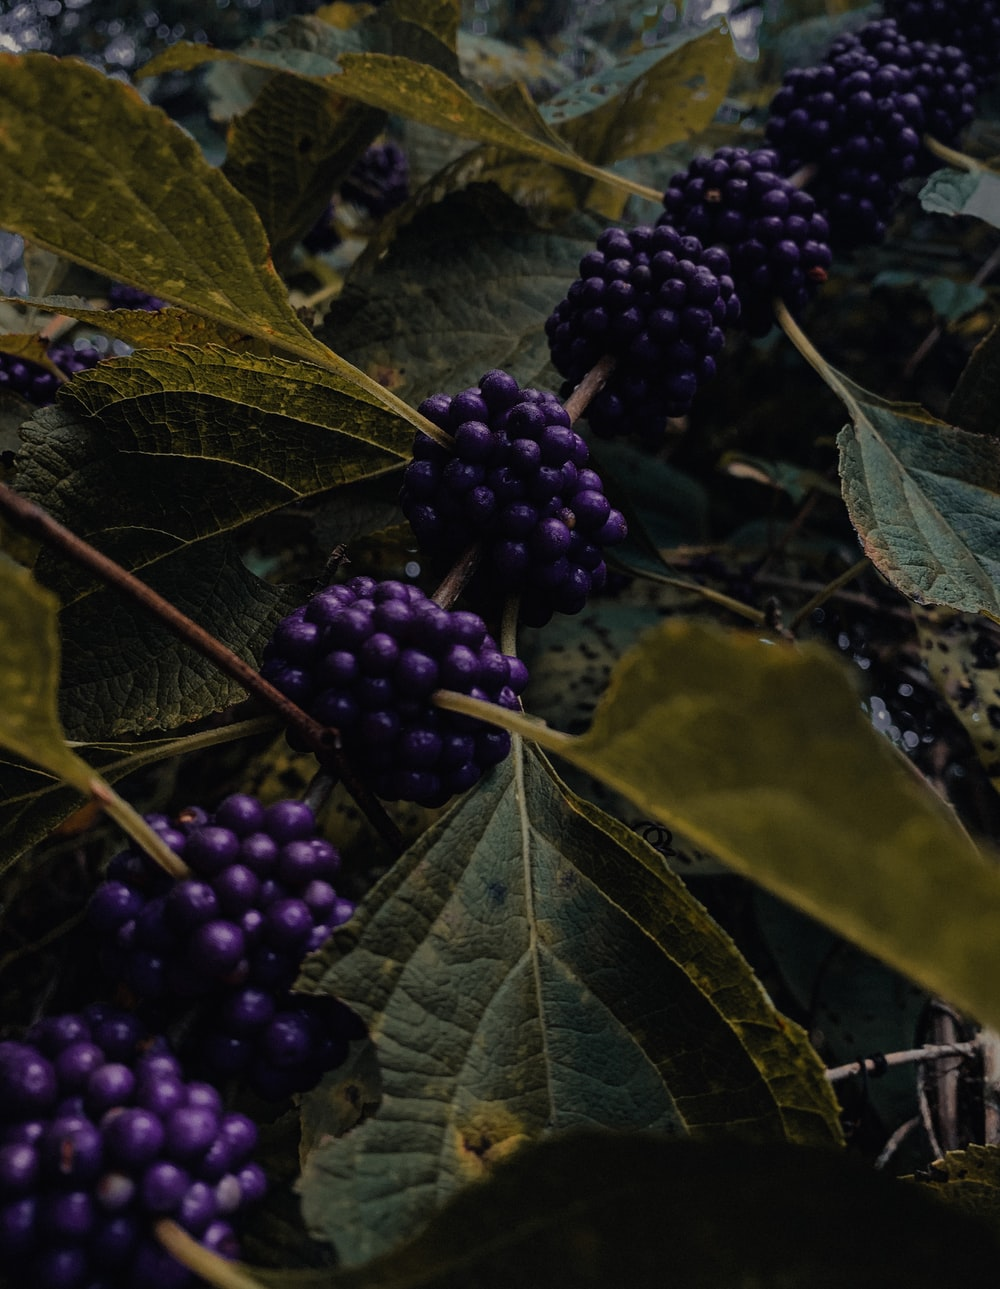 purple grapes on green leaves